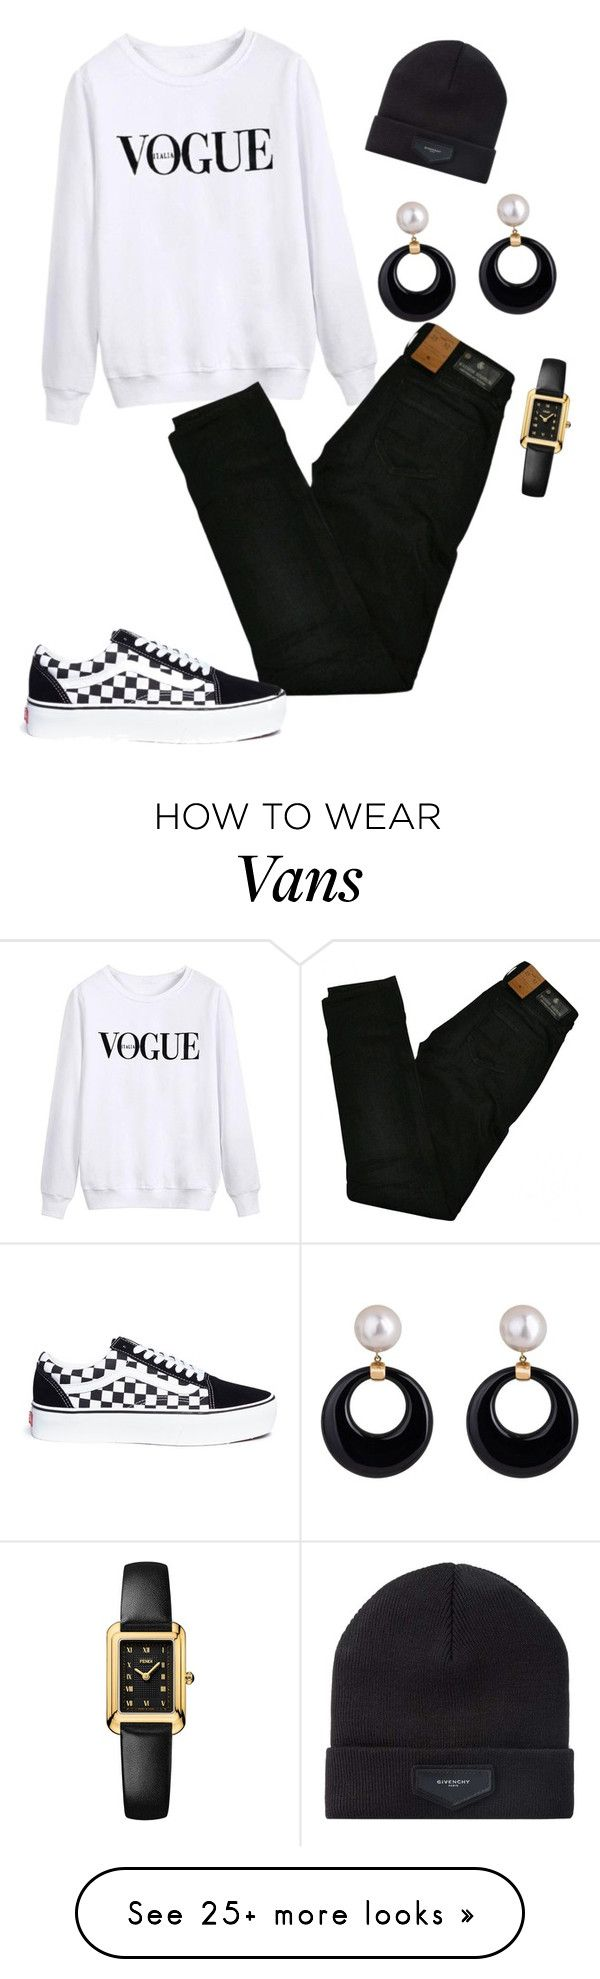 """100109 SAH"" by mil0000000000000 on Polyvore featuring Maison Scotch, Vans, Givenchy and Fendi"